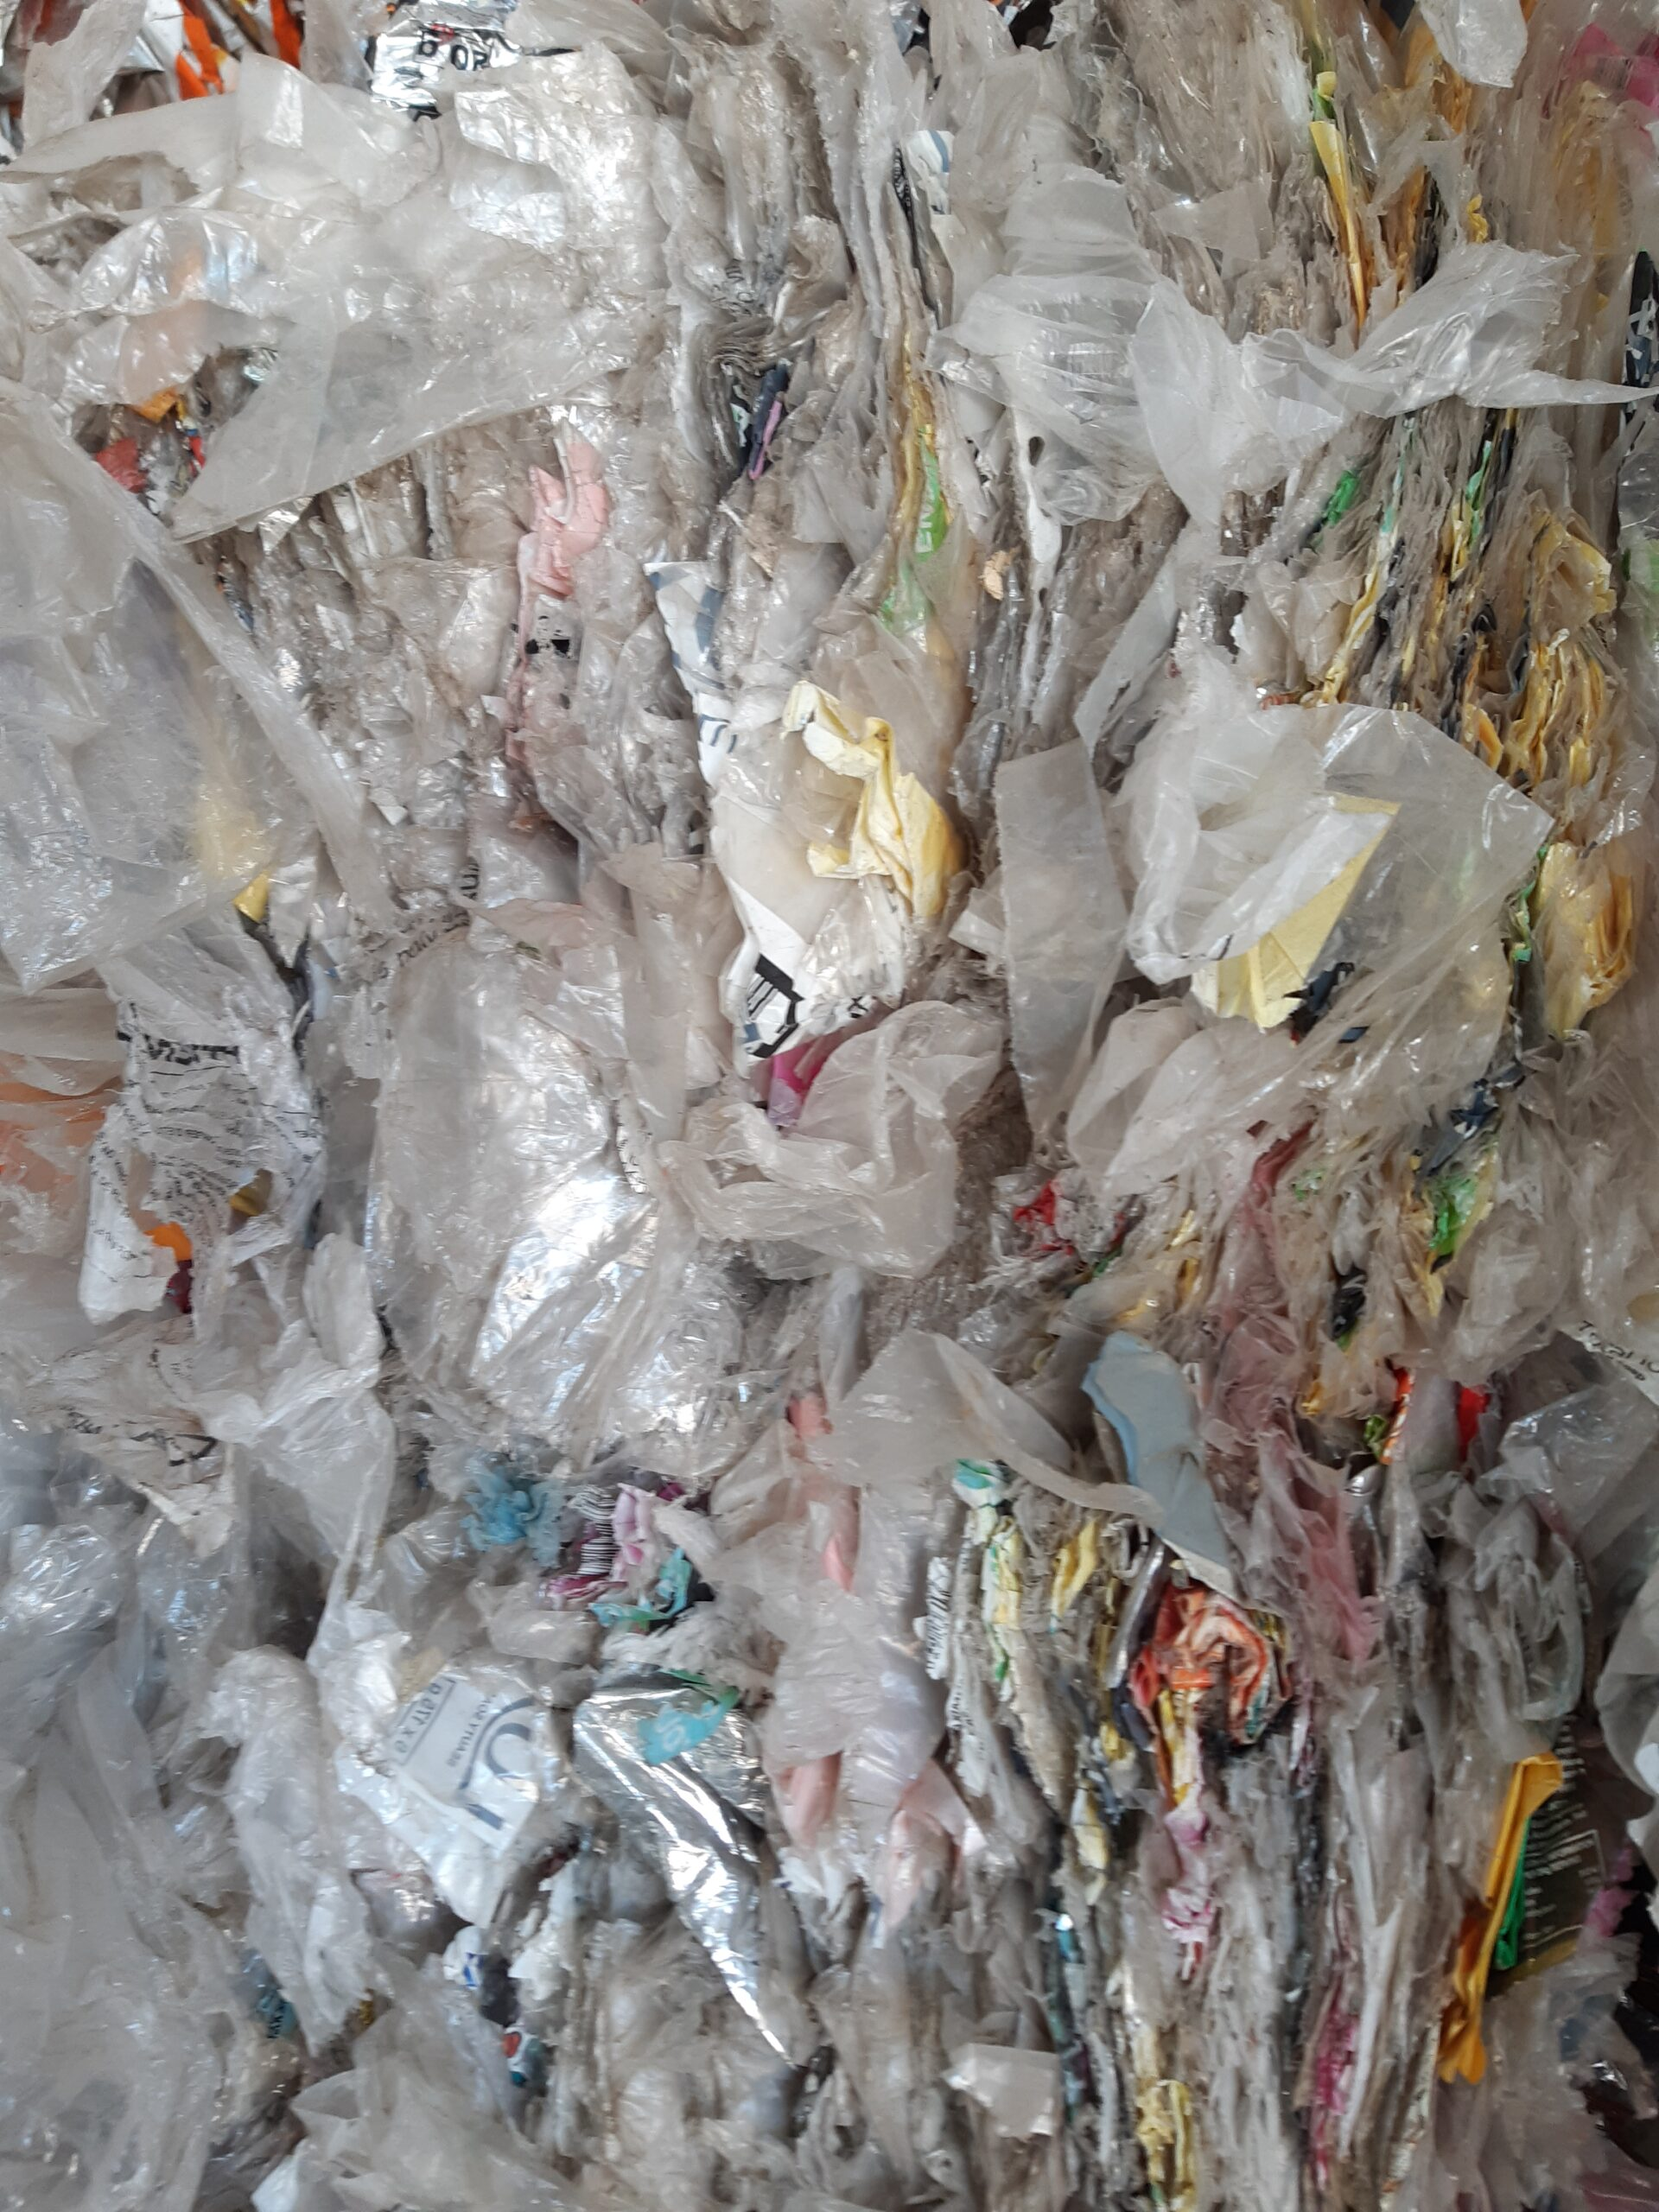 A Concrete Solution for Plastic Waste